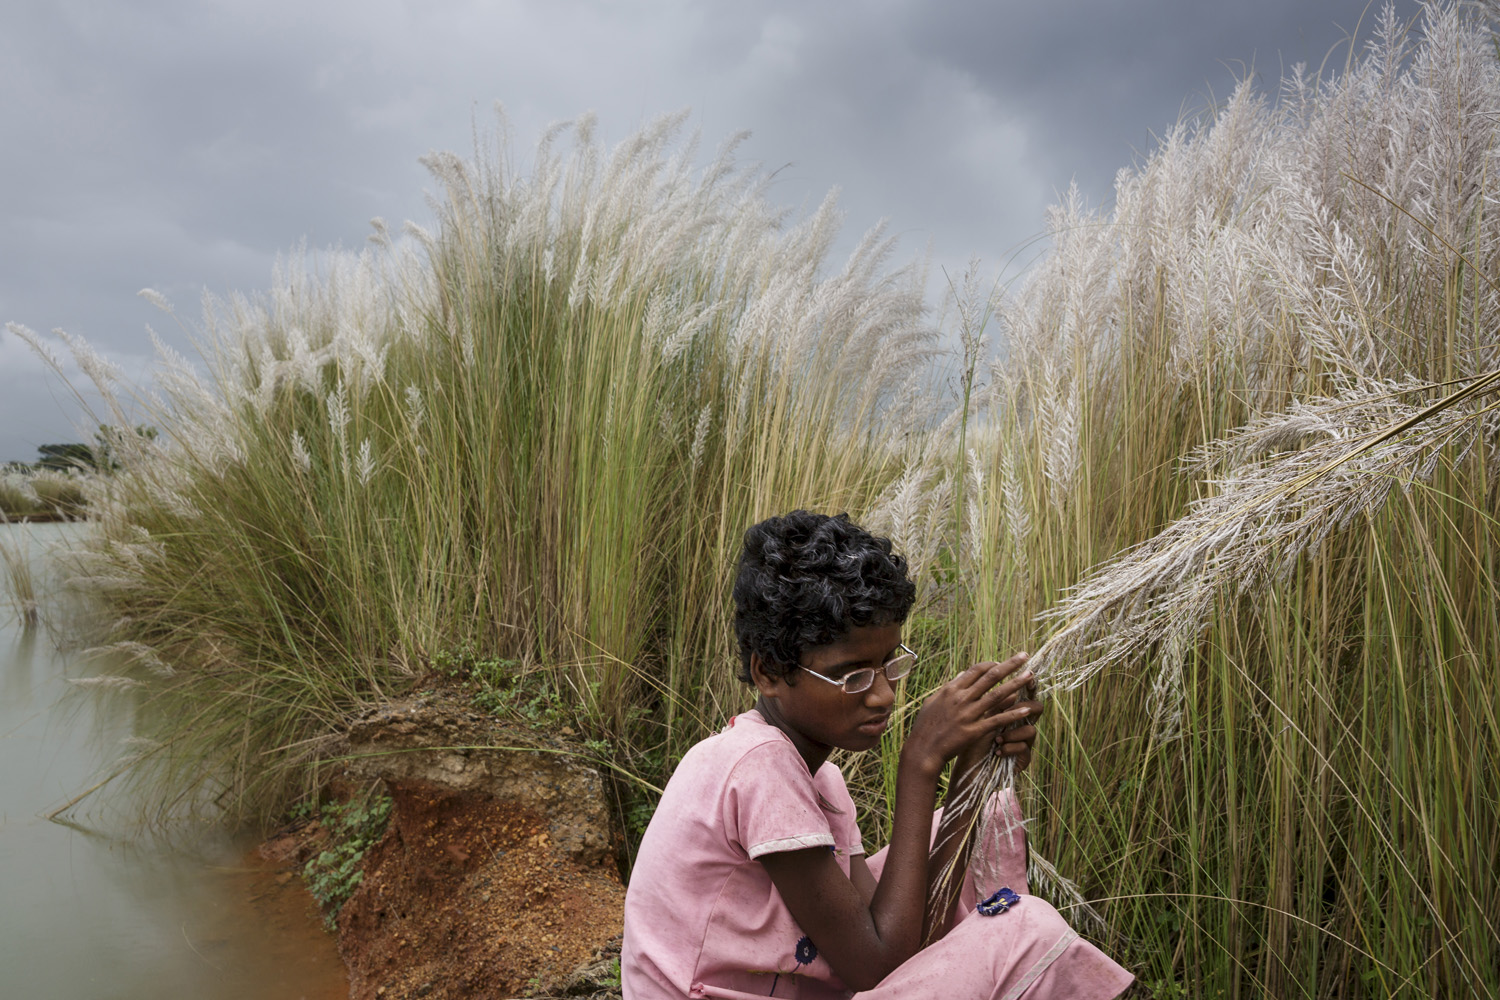 Sonia Singh explores some of her first sensations as she runs her hands through bullrushes close to her village after undergoing eye surgery on Oct. 28, 2013 in West Bengal, India.